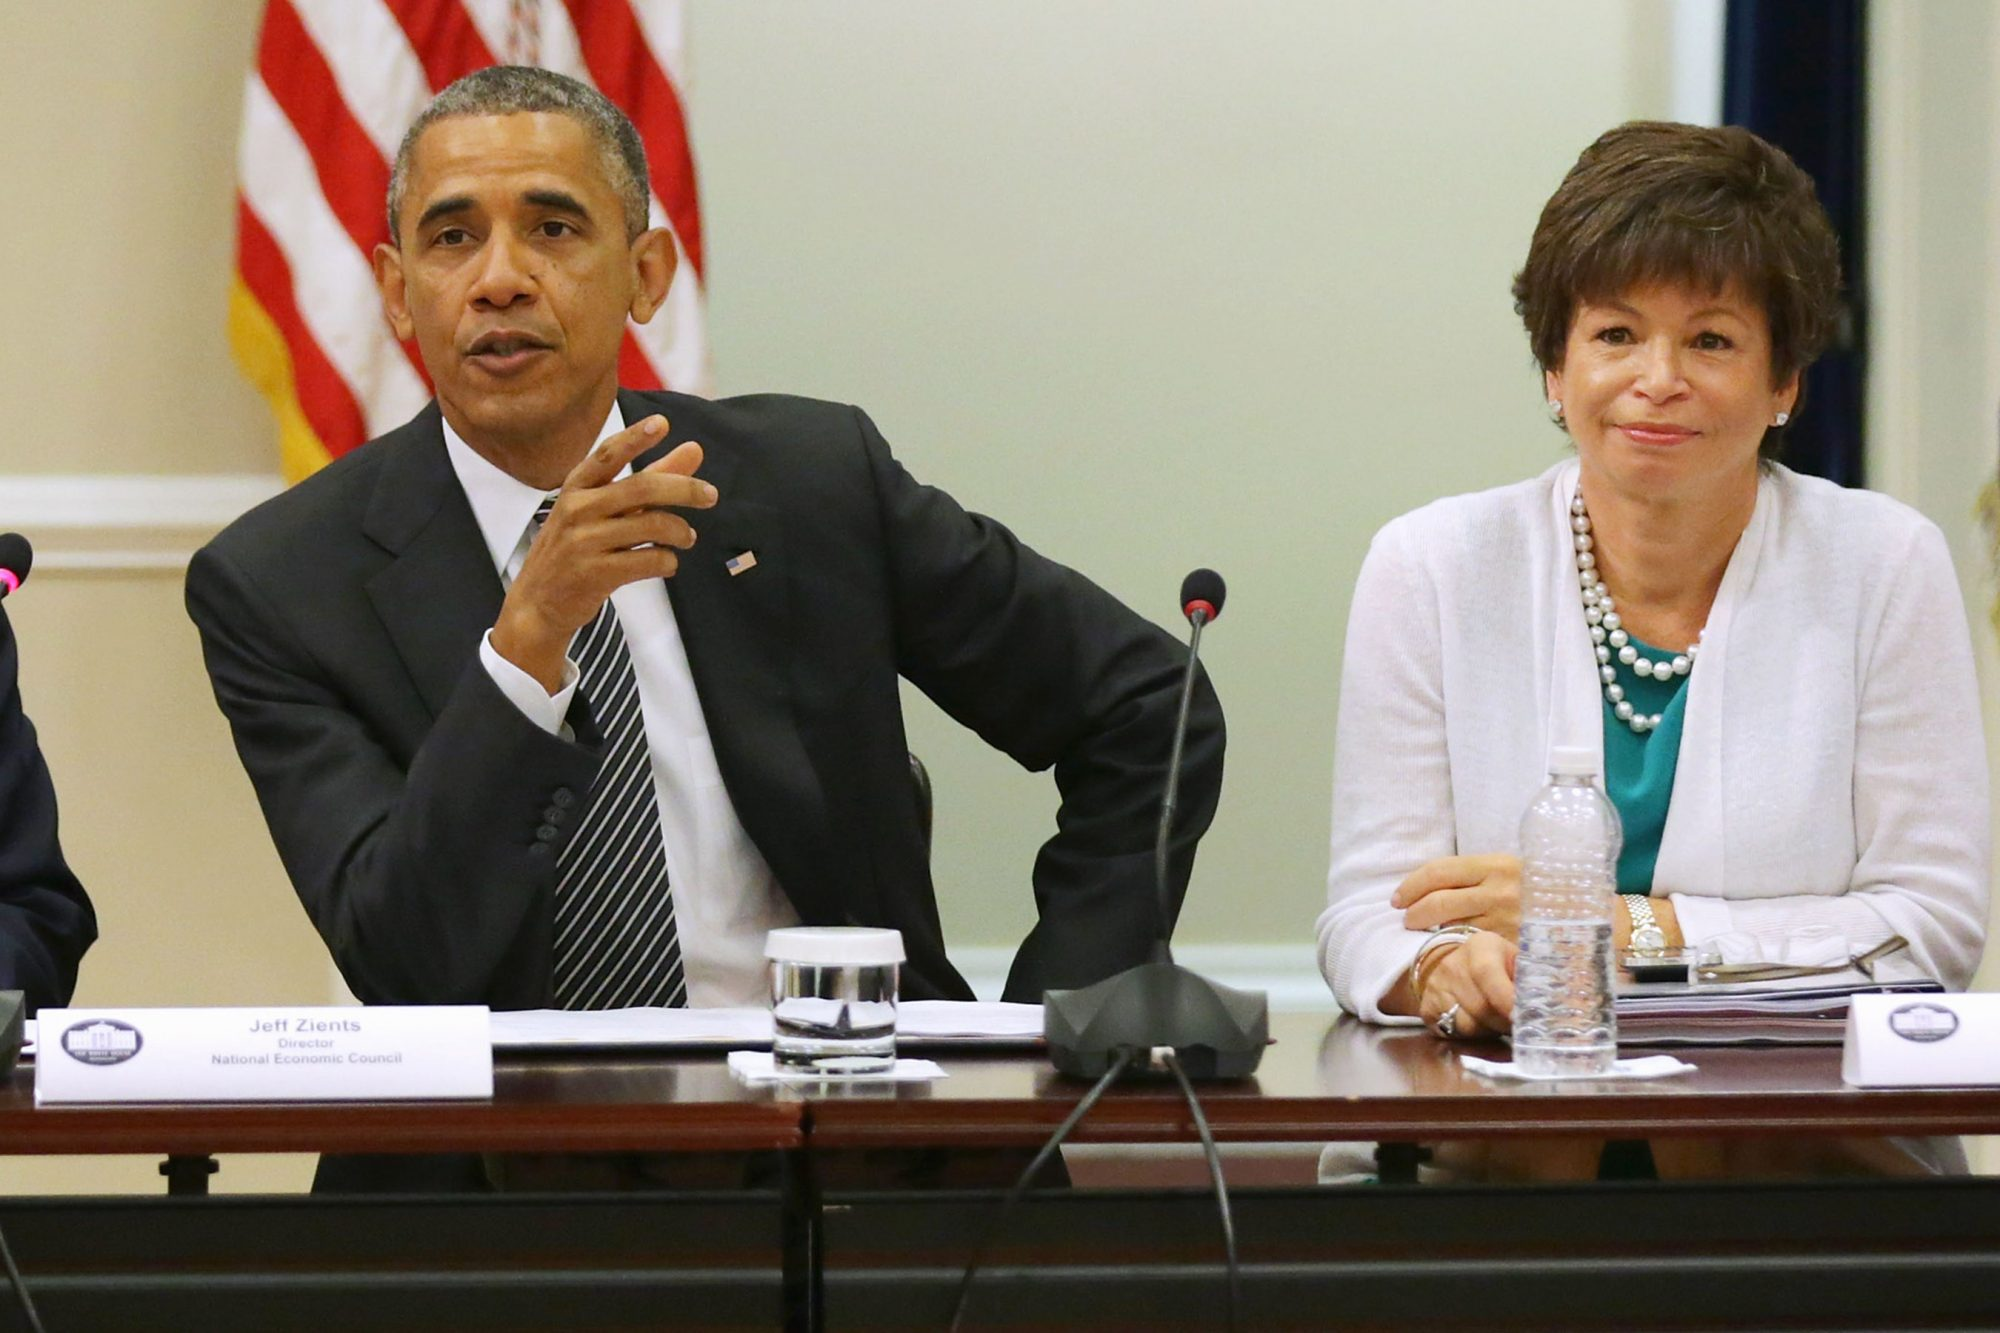 President Obama Meets With Executives And Their Small Business Suppliers